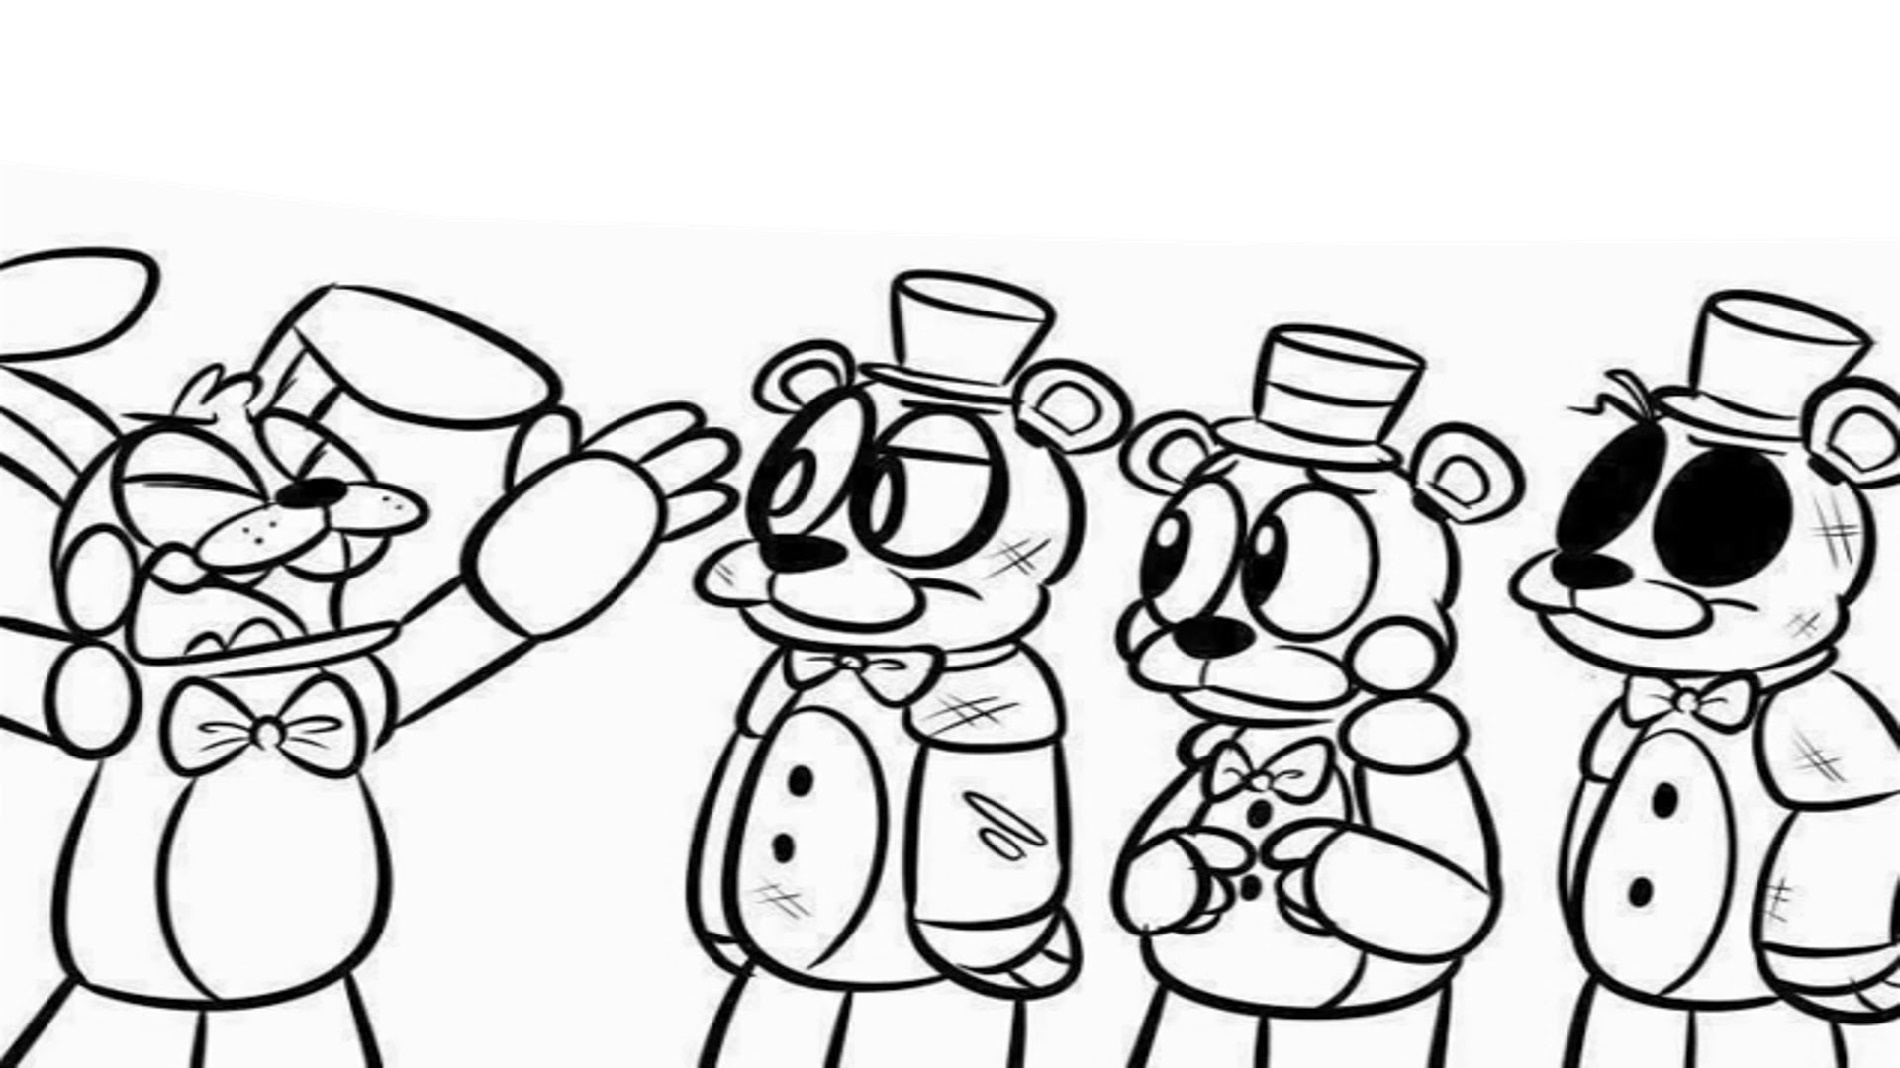 Five Nights At Freddy's Coloring Free